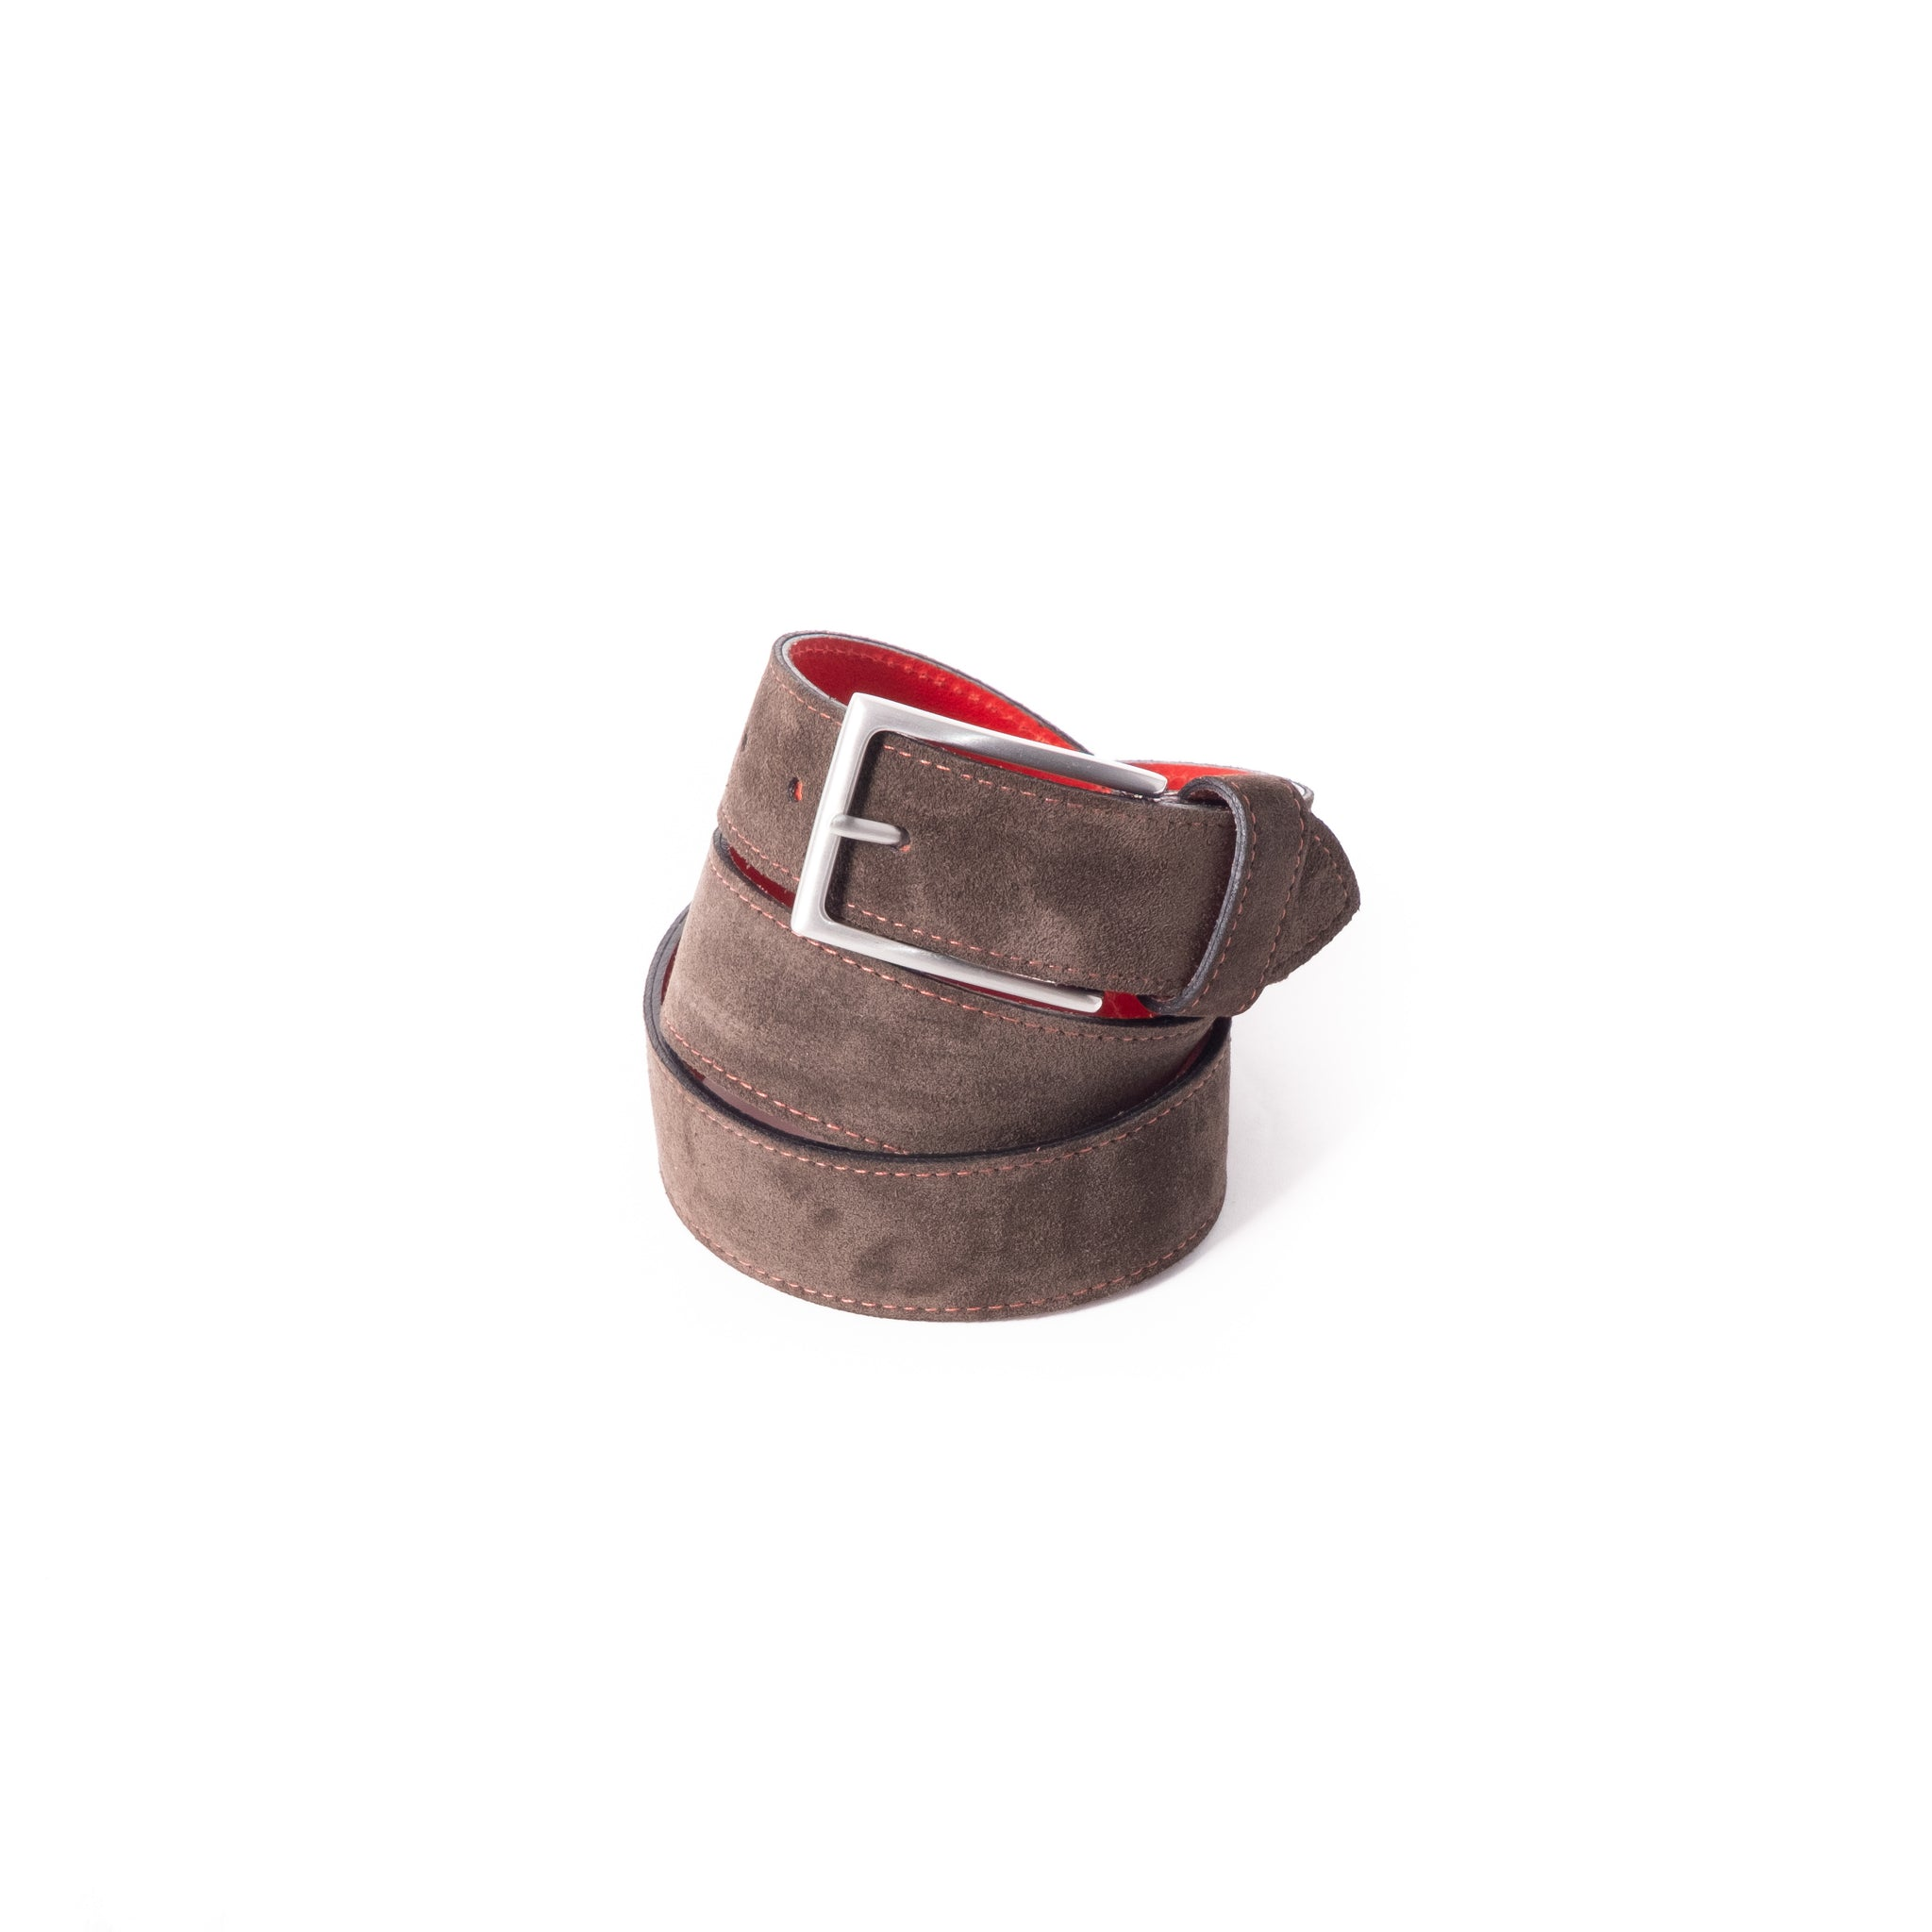 'Dirk' Jeans Belt - Brown Suede